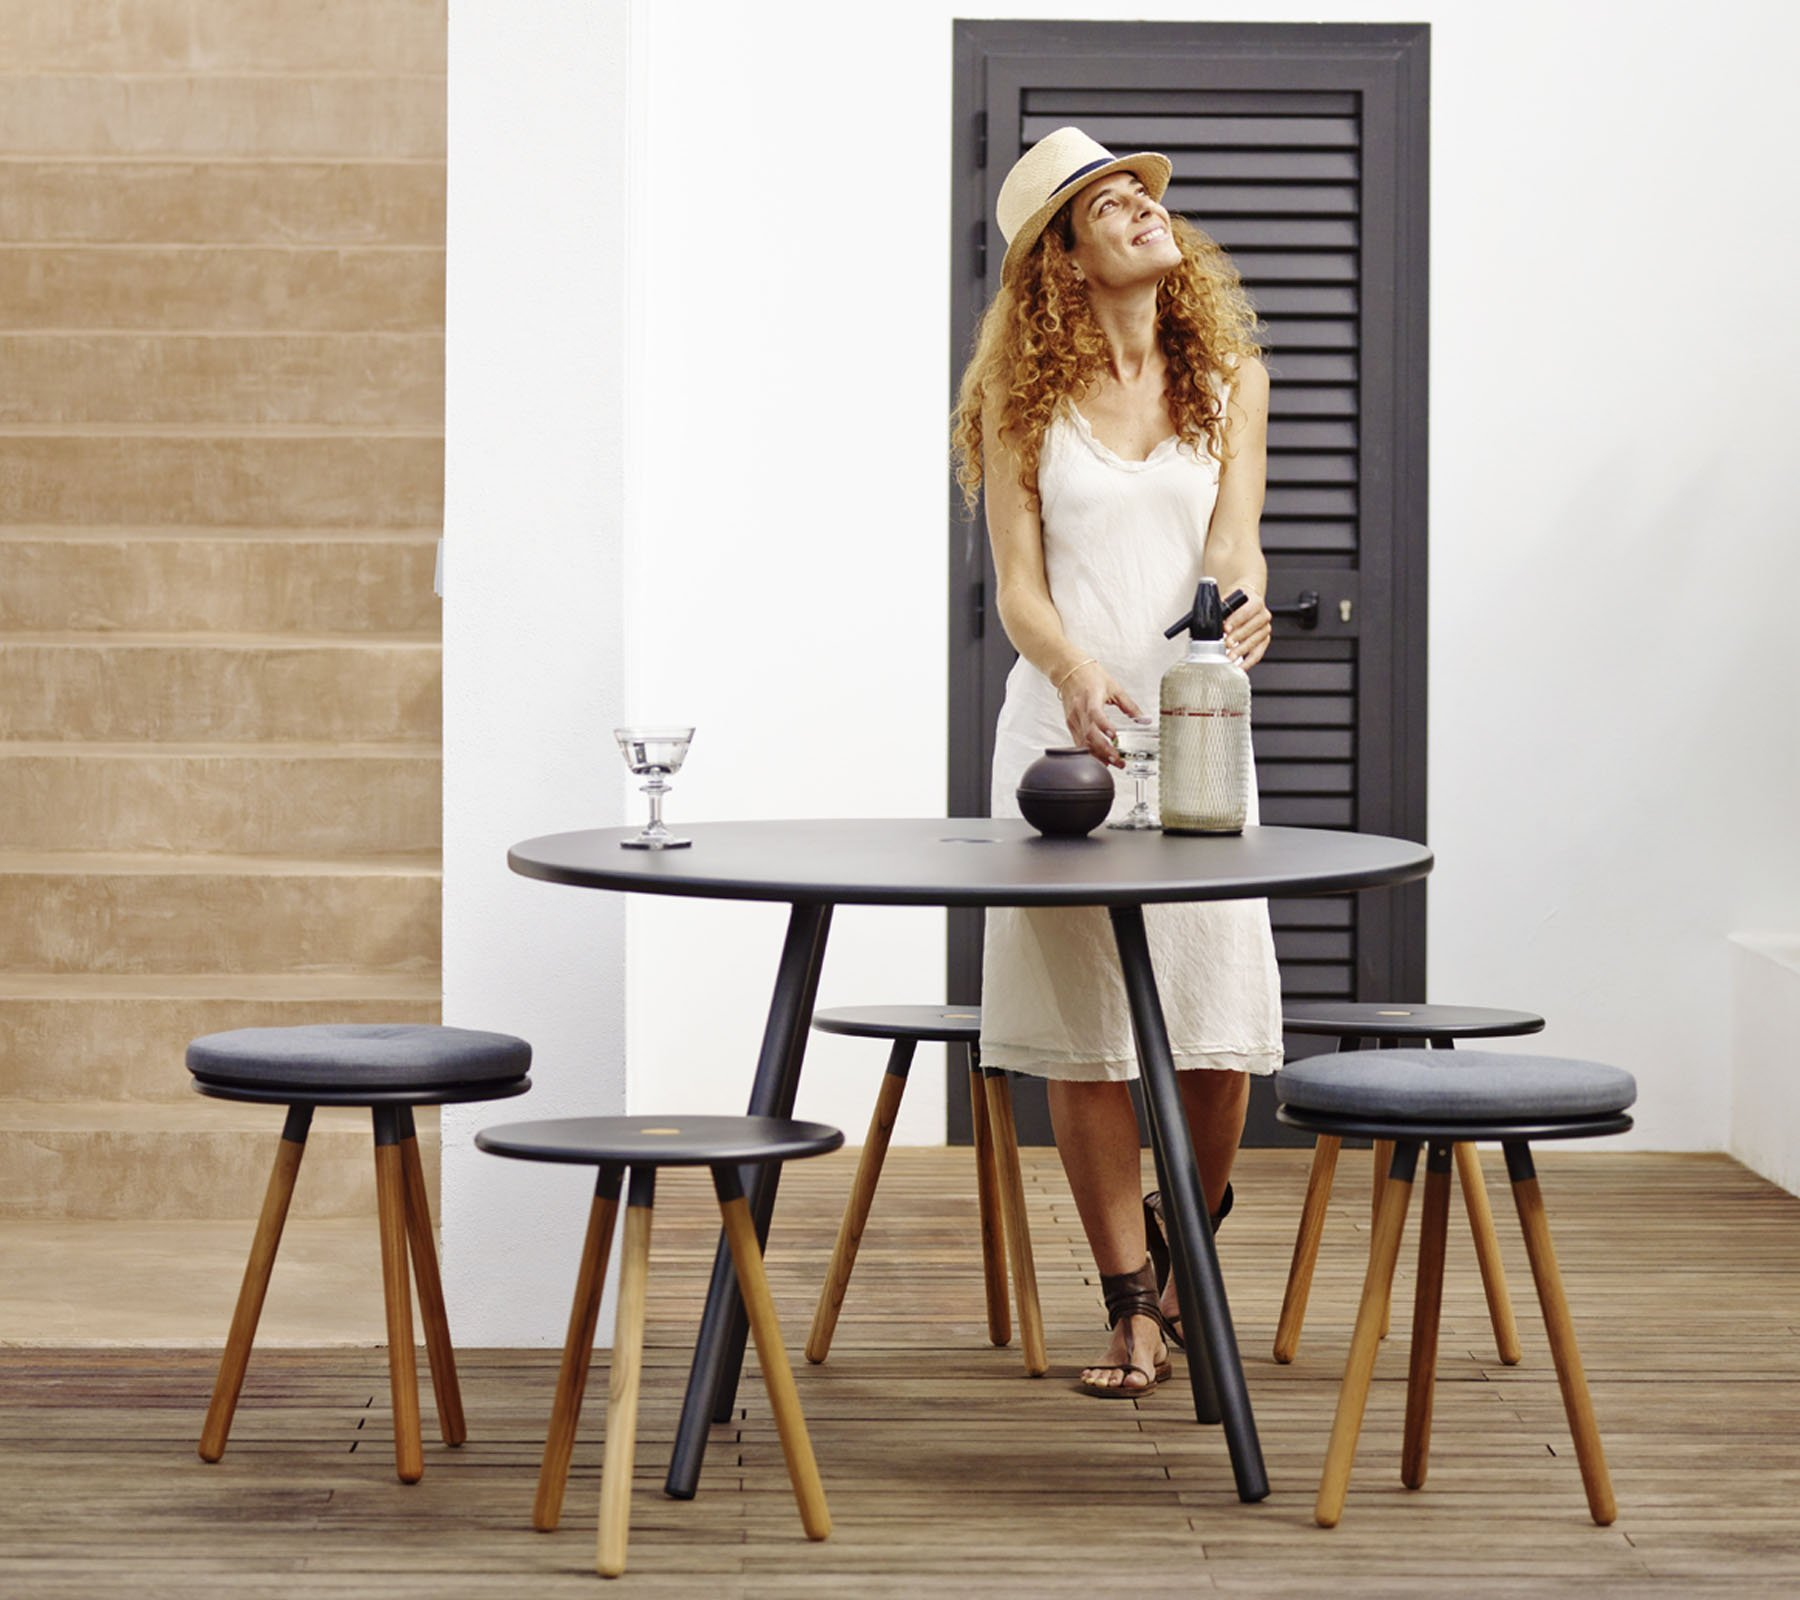 Area Table dining from Cane-line, designed by Welling/Ludvik